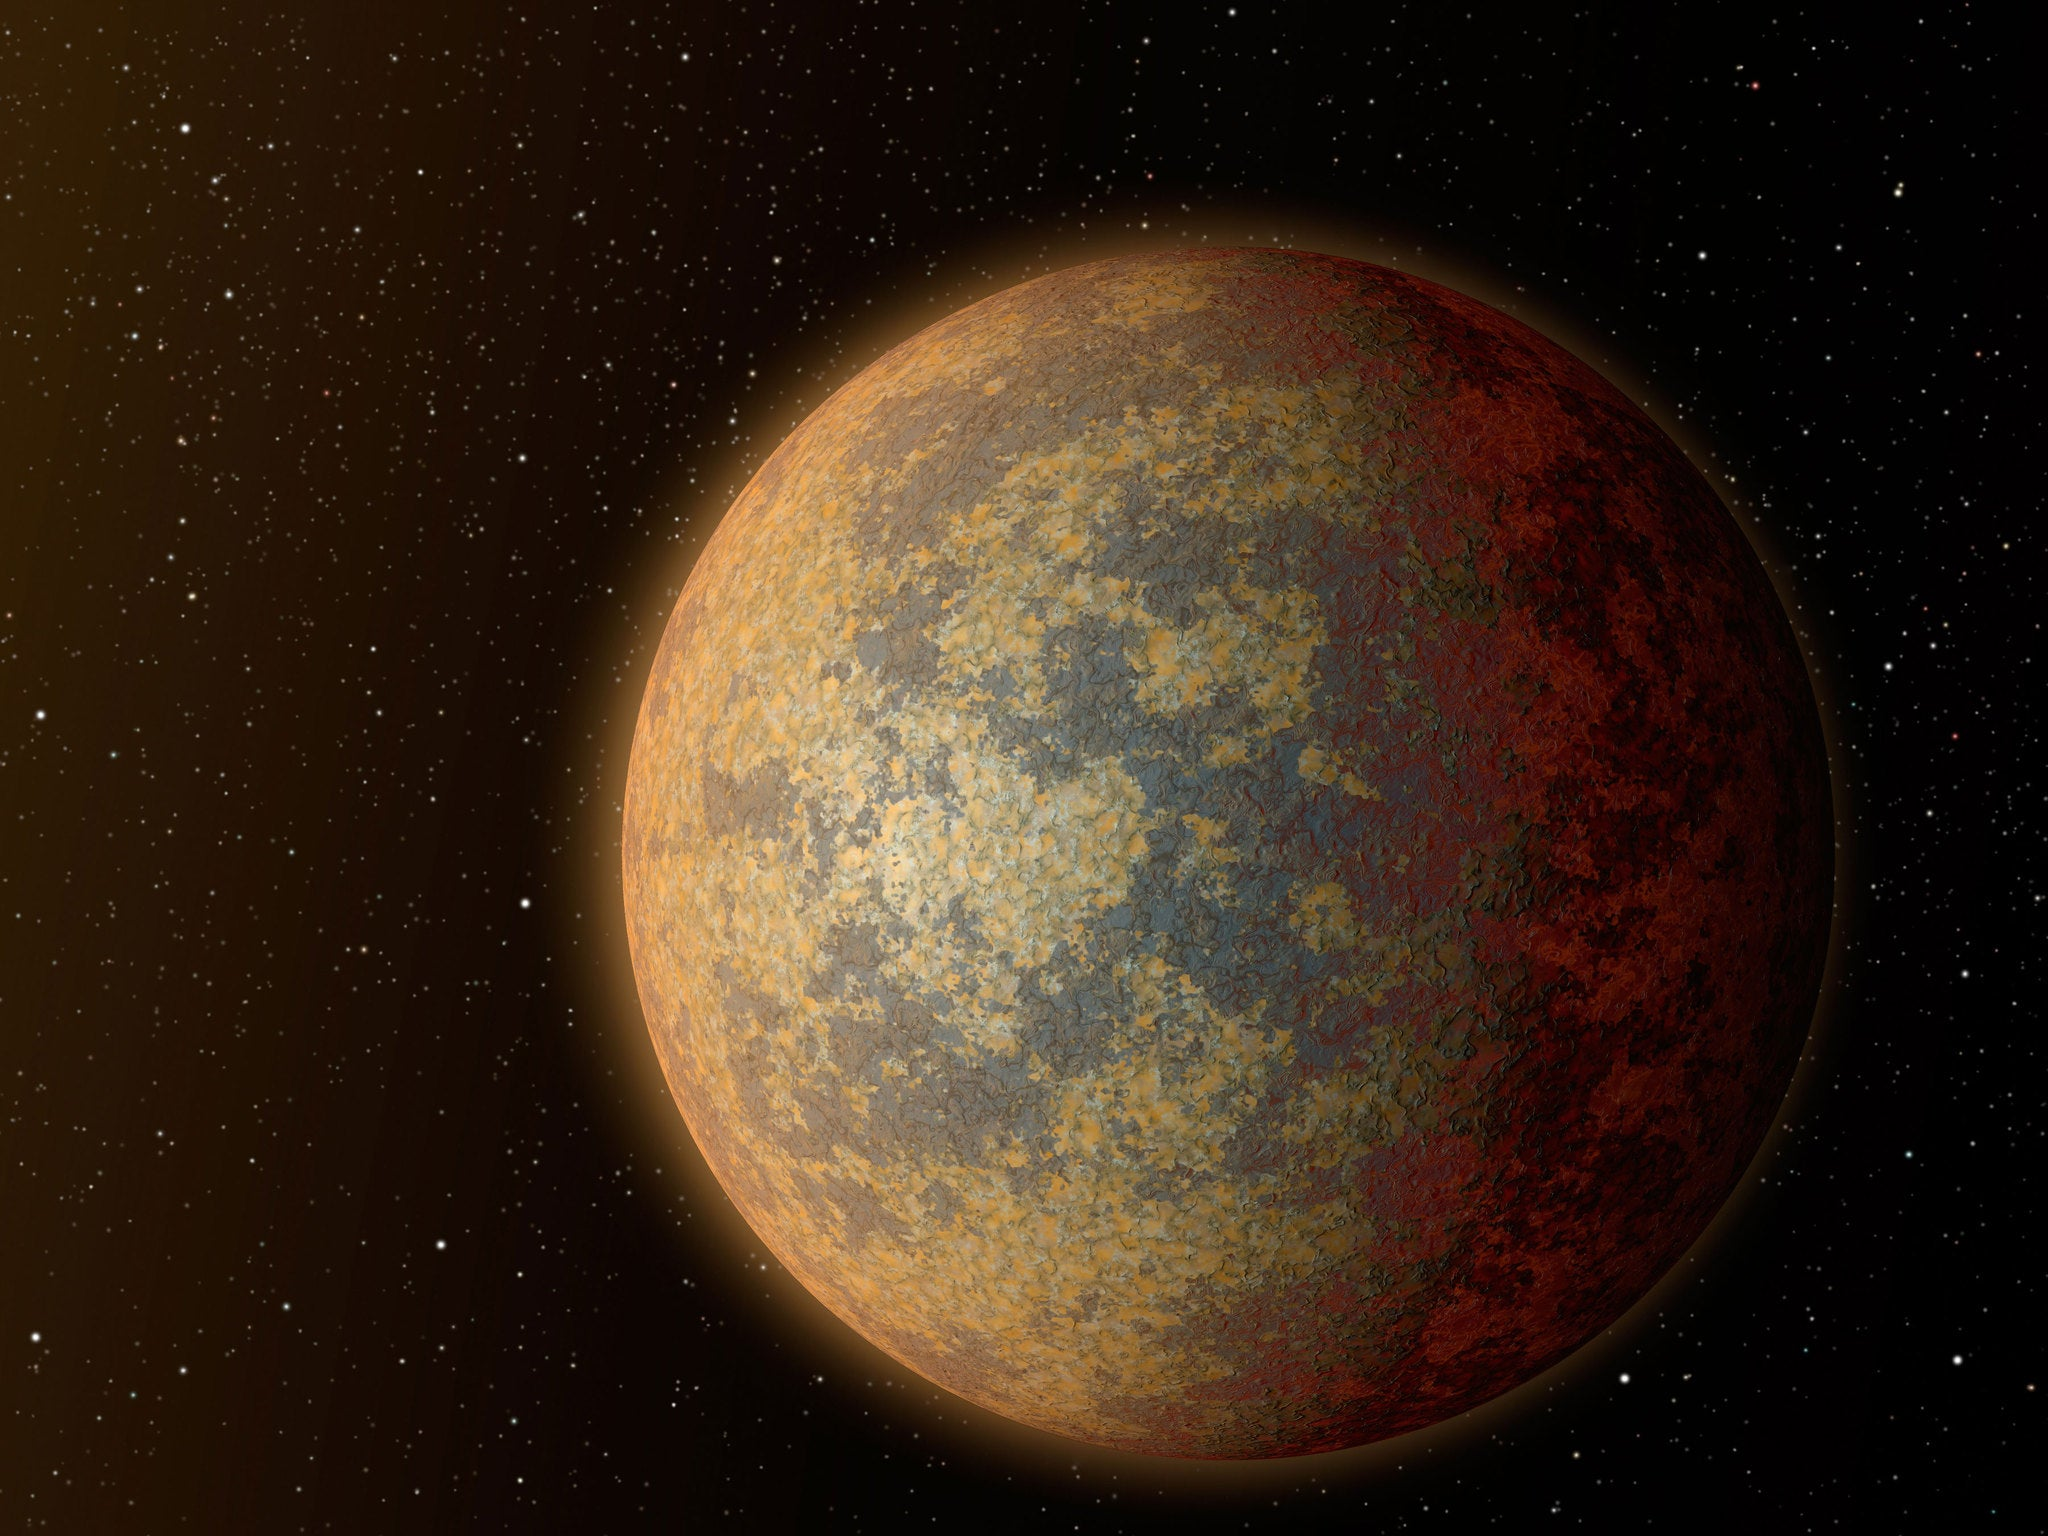 HD 219134b: Nasa discovers yet another rocky exoplanet, and it's only 21 light years away